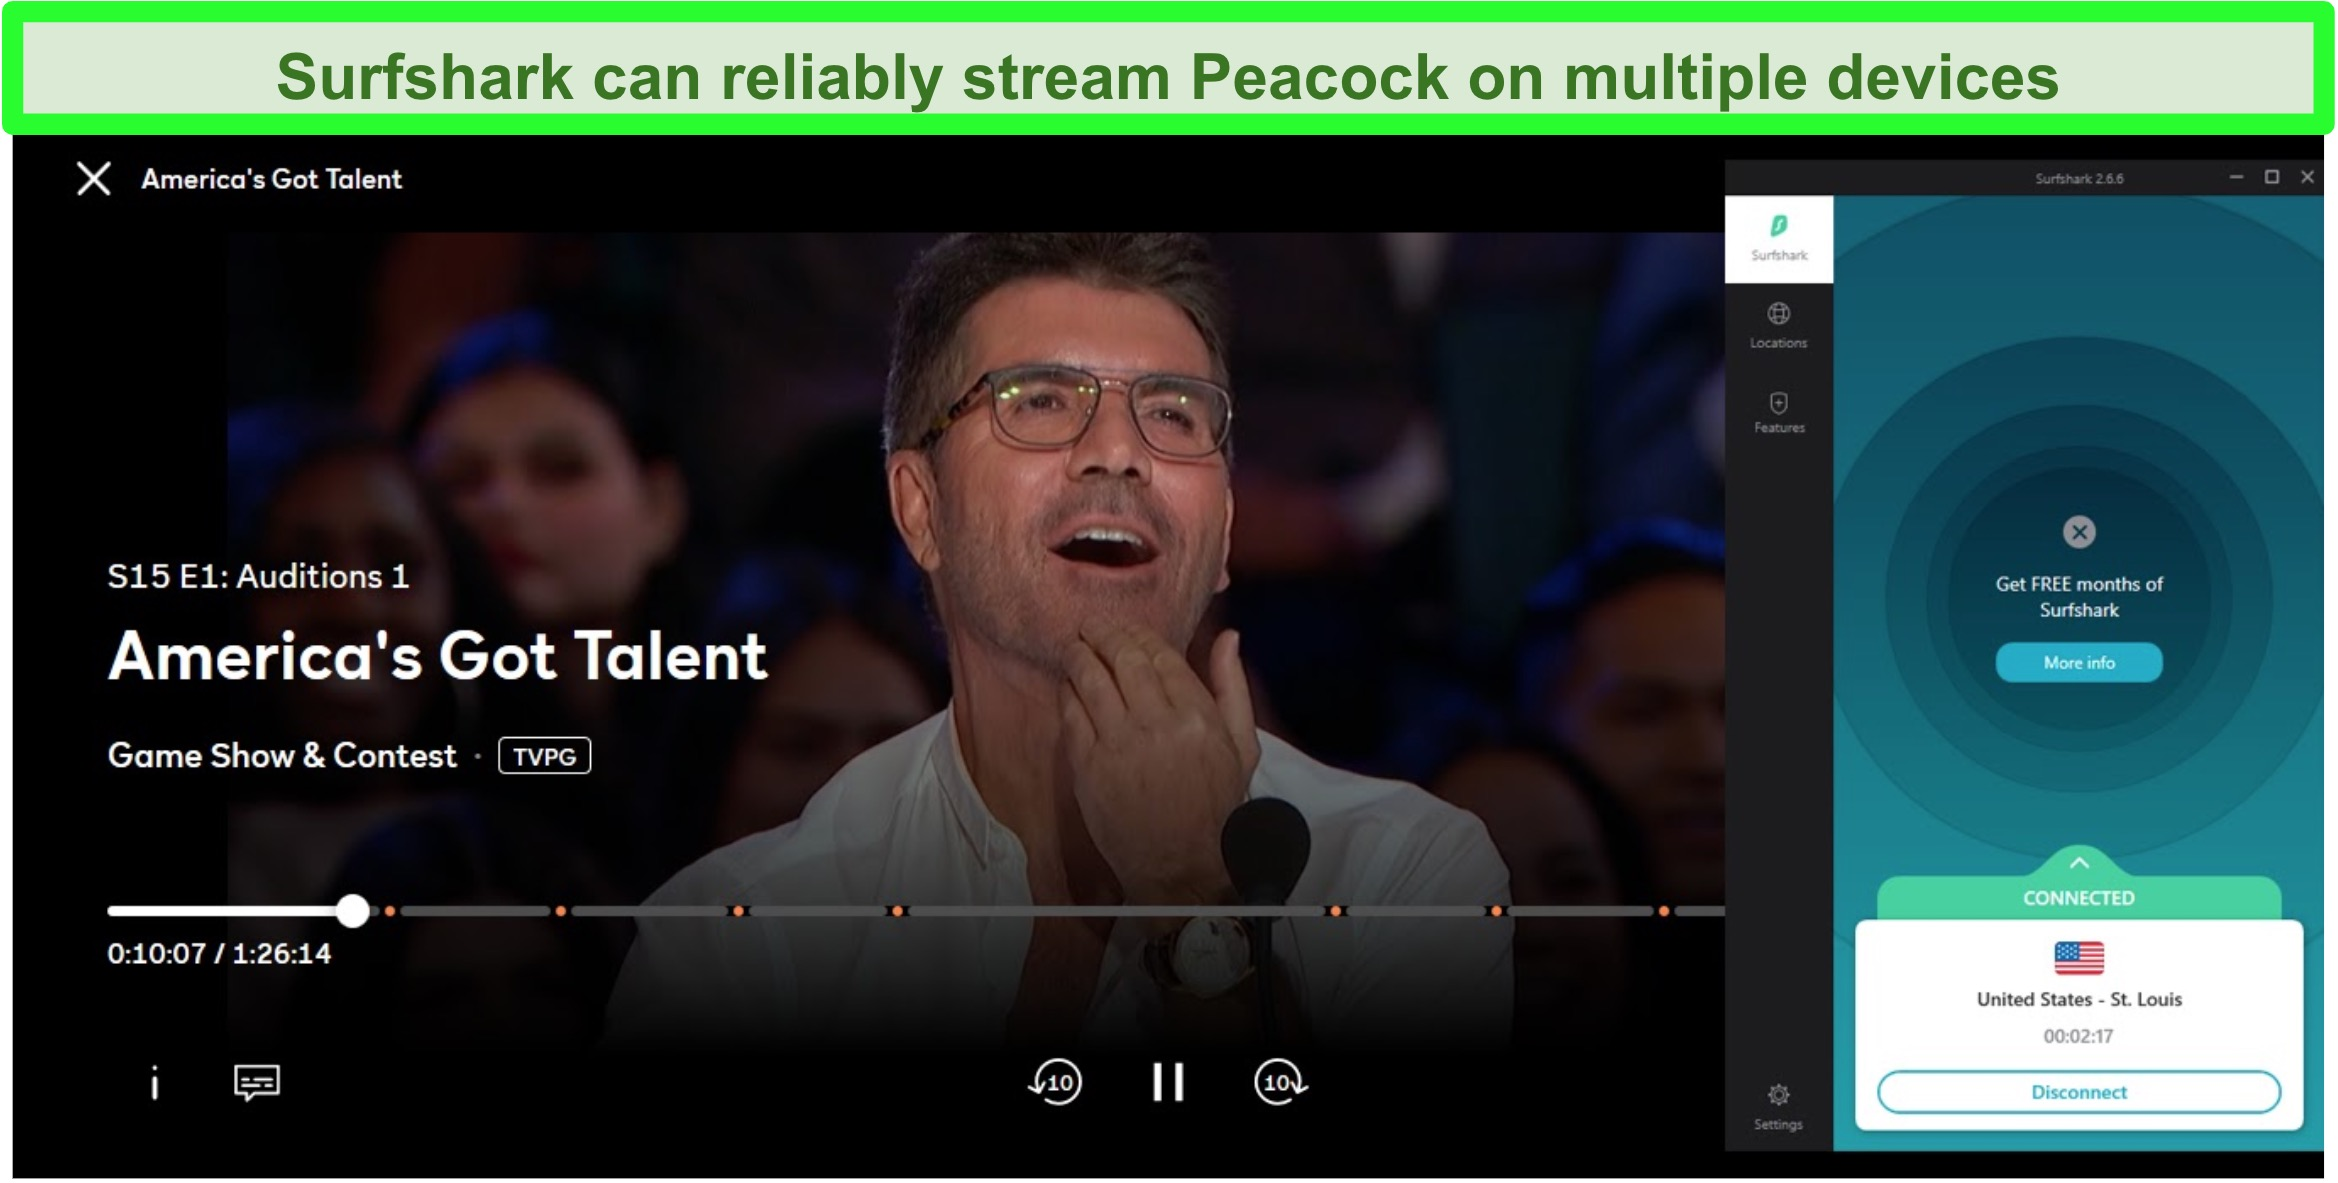 Screenshot of Peacock streaming America's Got Talent while connected to a St. Louis server